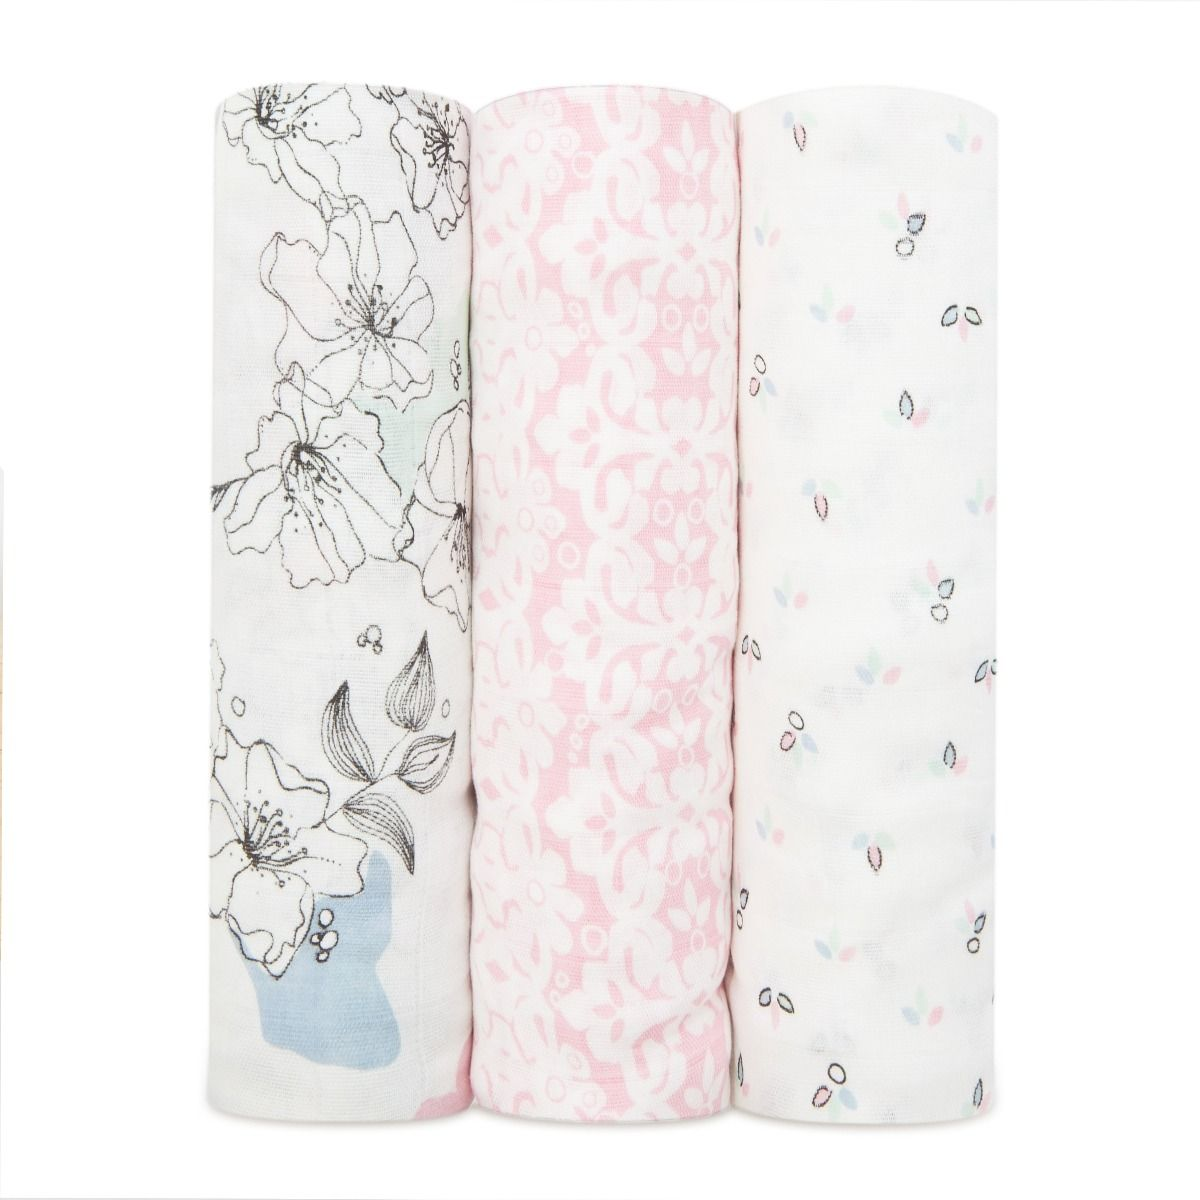 Aden and Anais Metallic Primrose Birch silky soft swaddle 3-pack